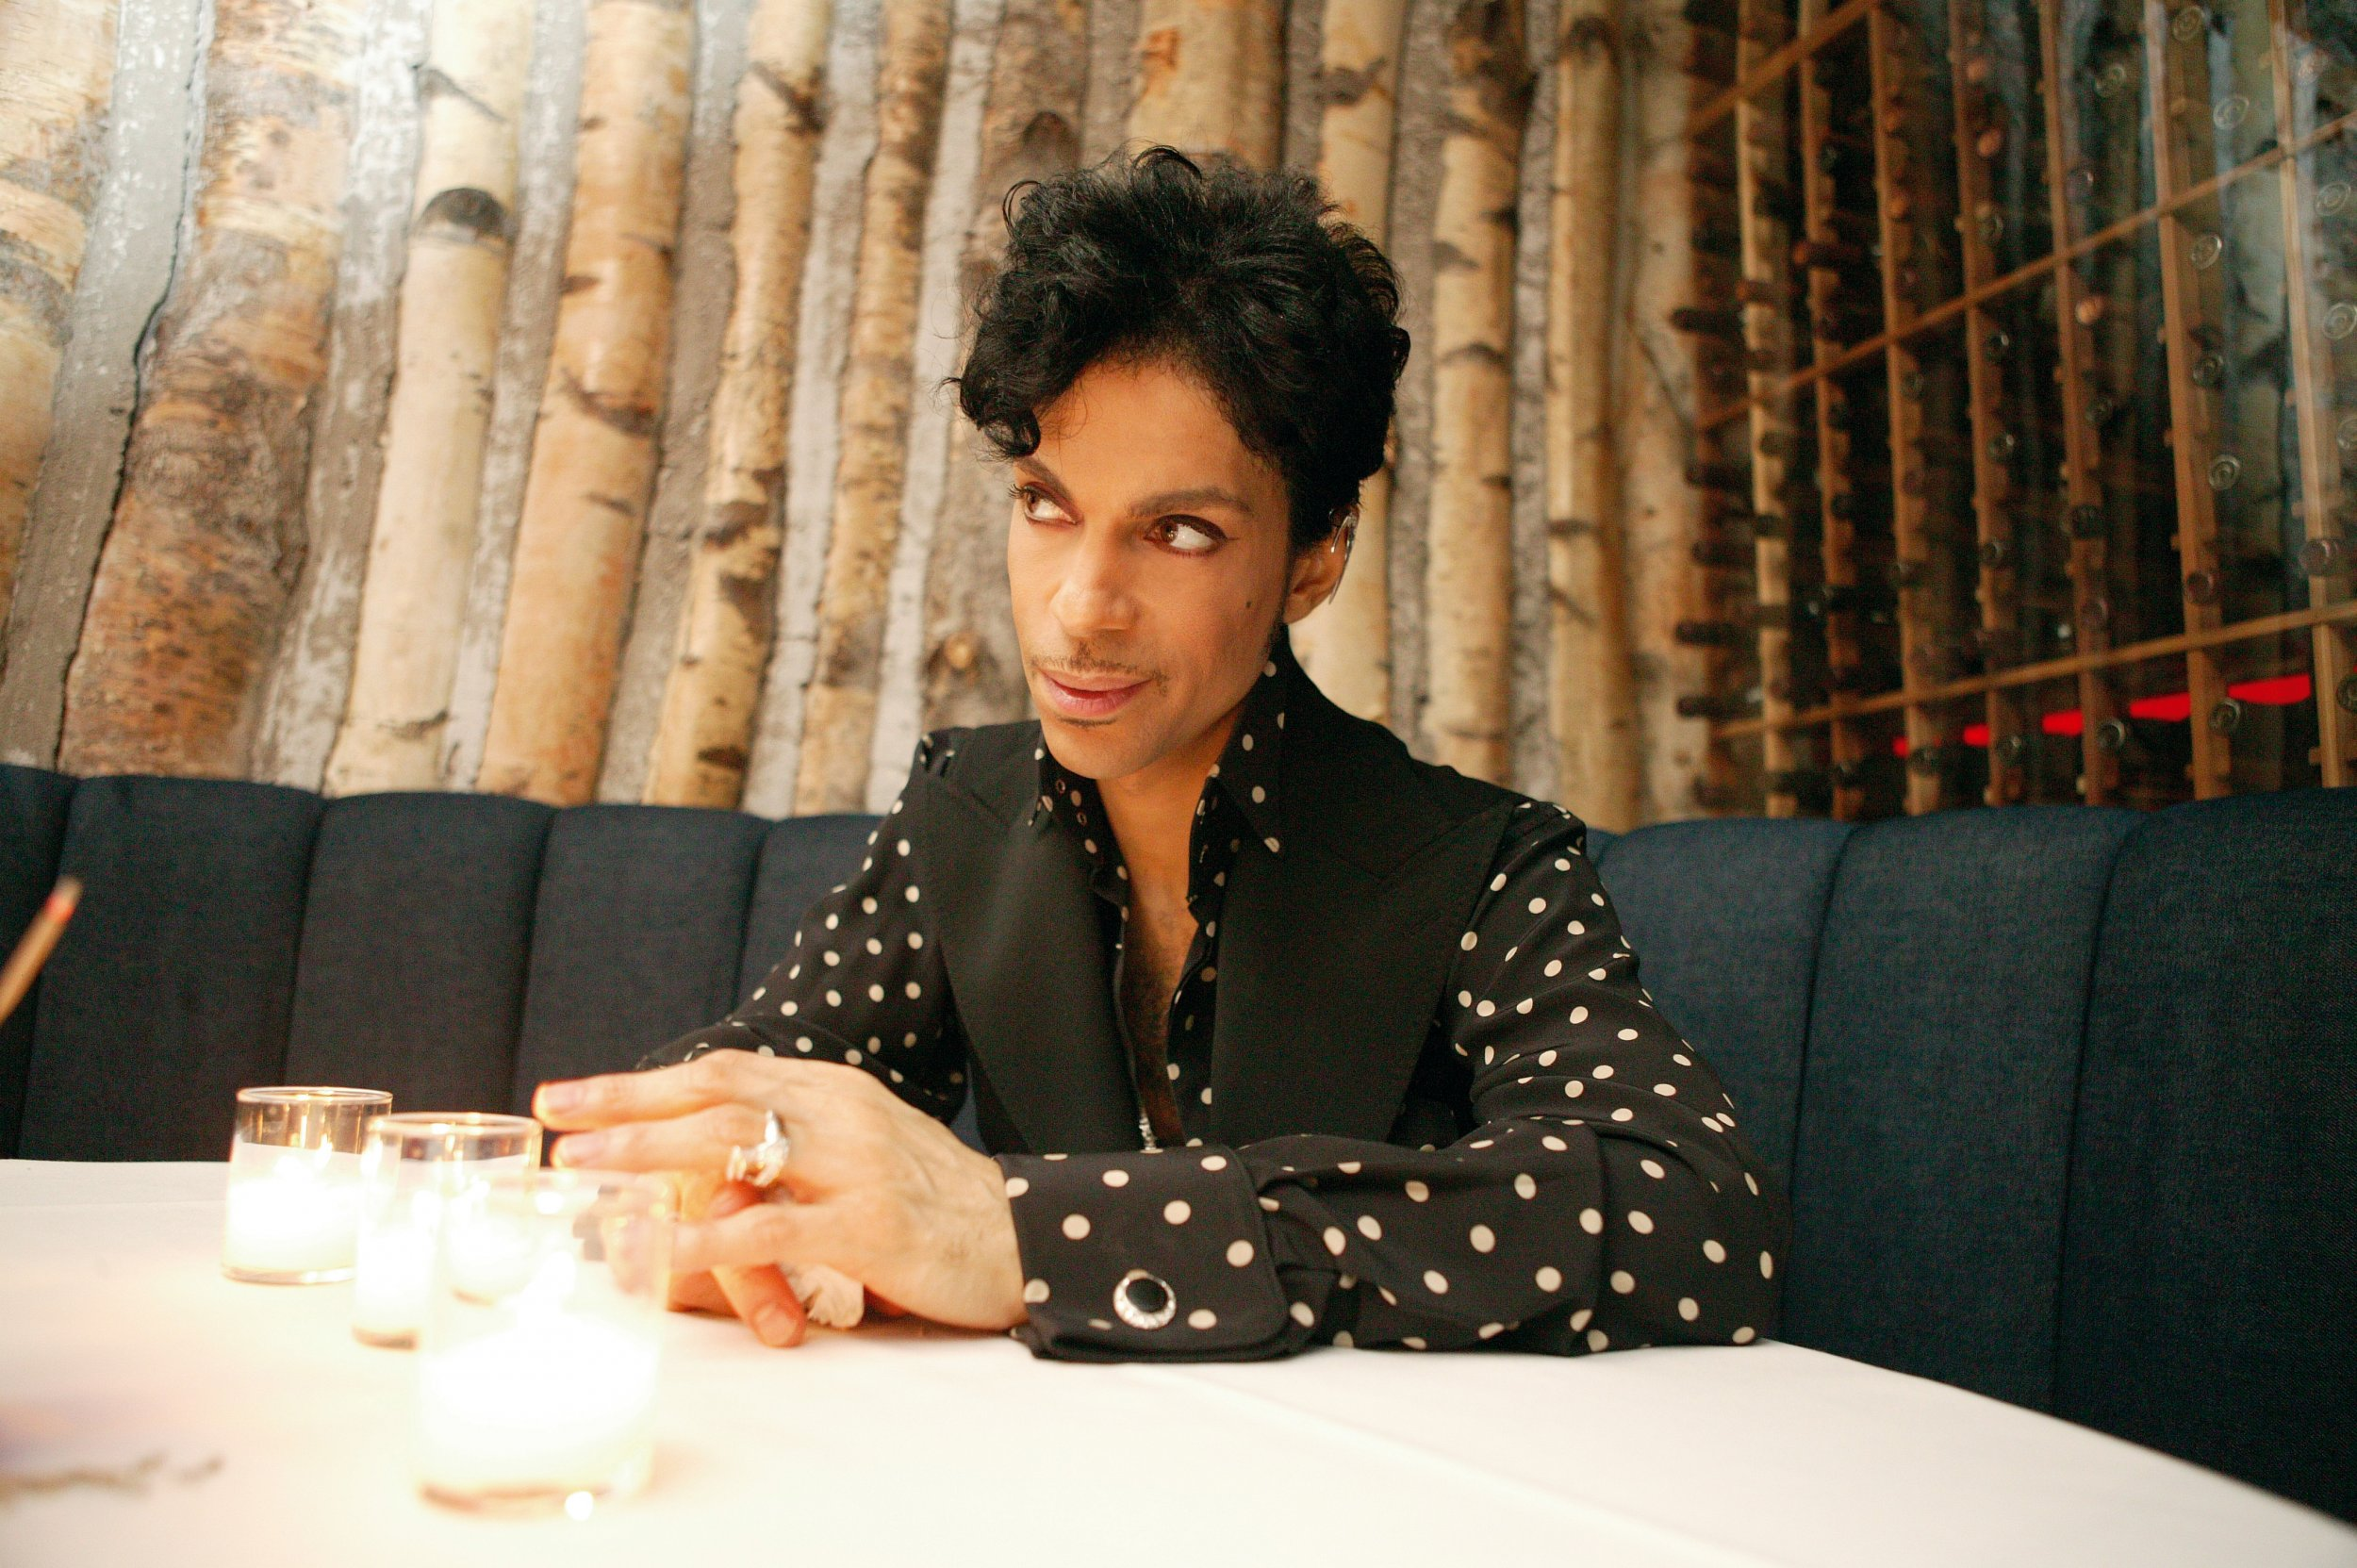 Six amazing Prince stories, as told by the superstar's personal photographer